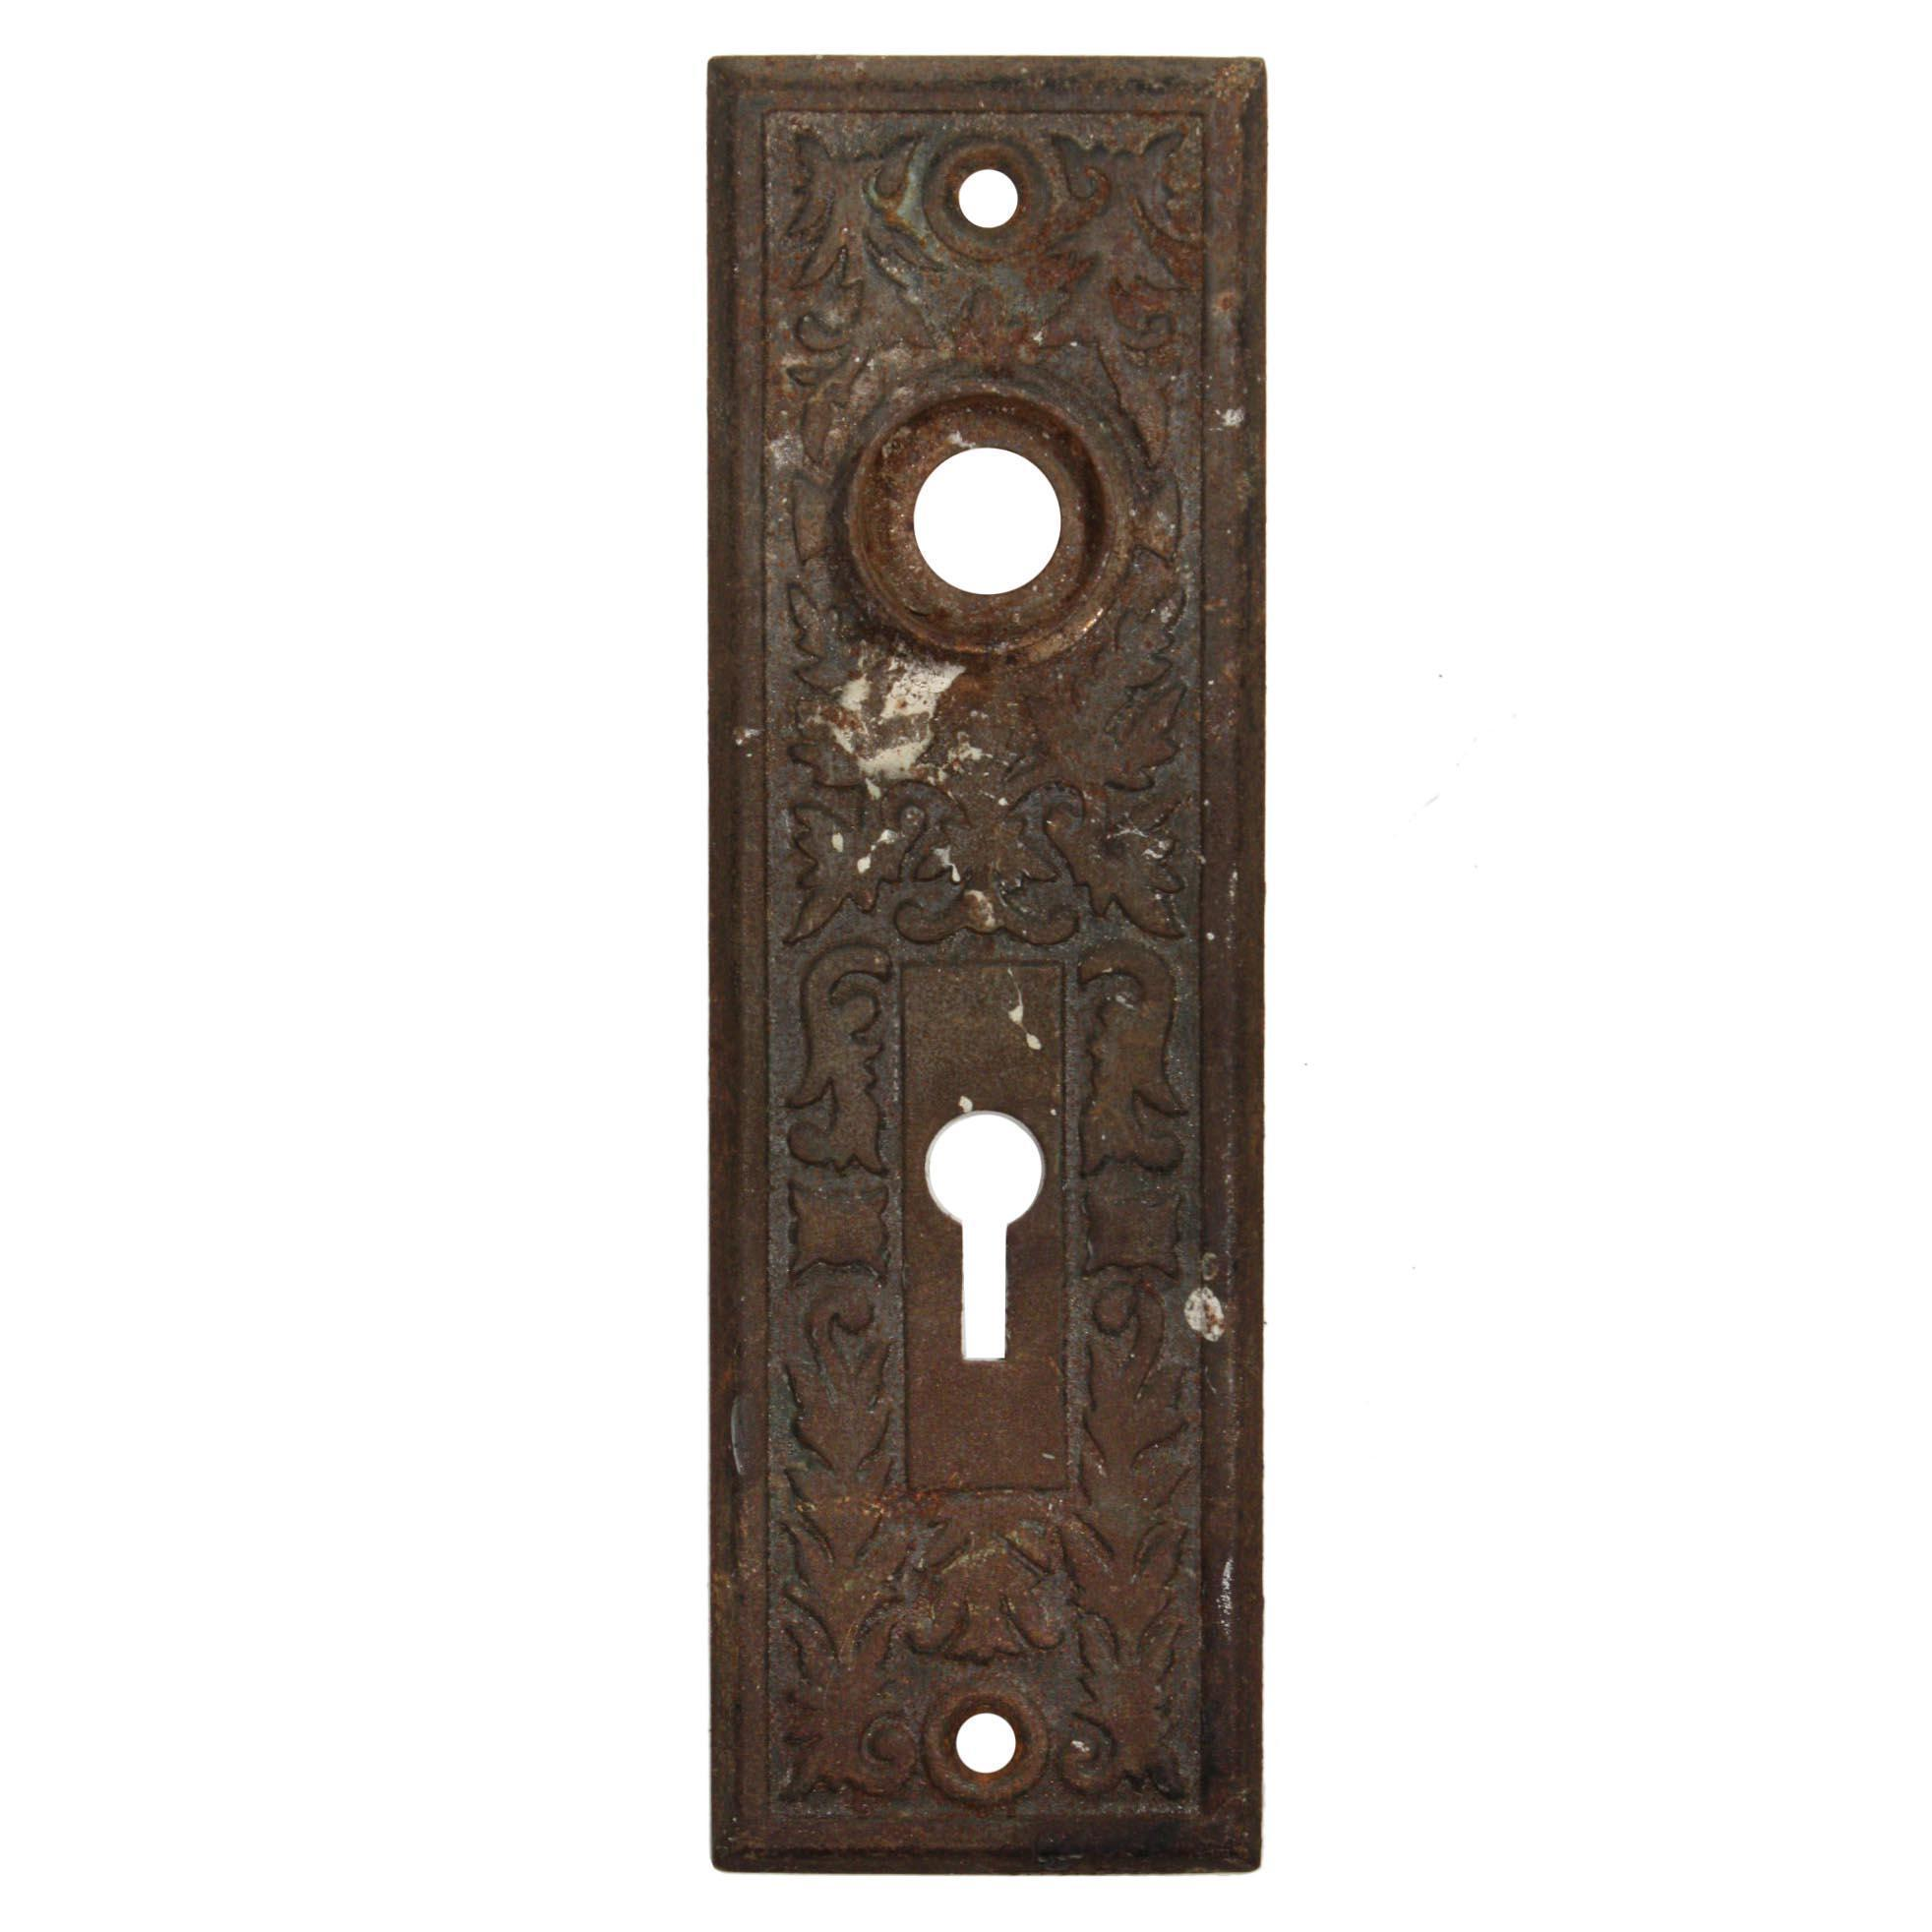 Antique Eastlake Doorplates with Leaves, Late 19th Century